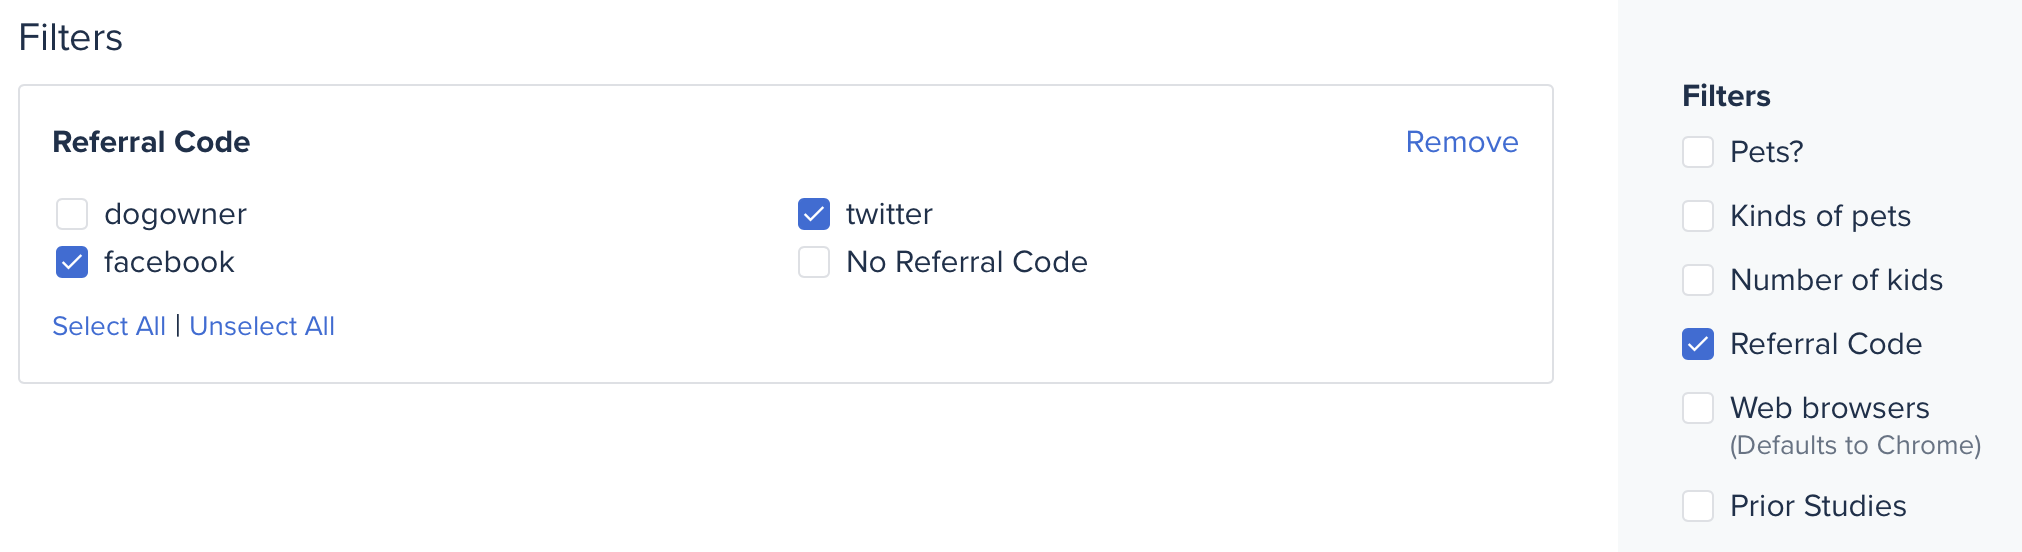 referral_codes.png